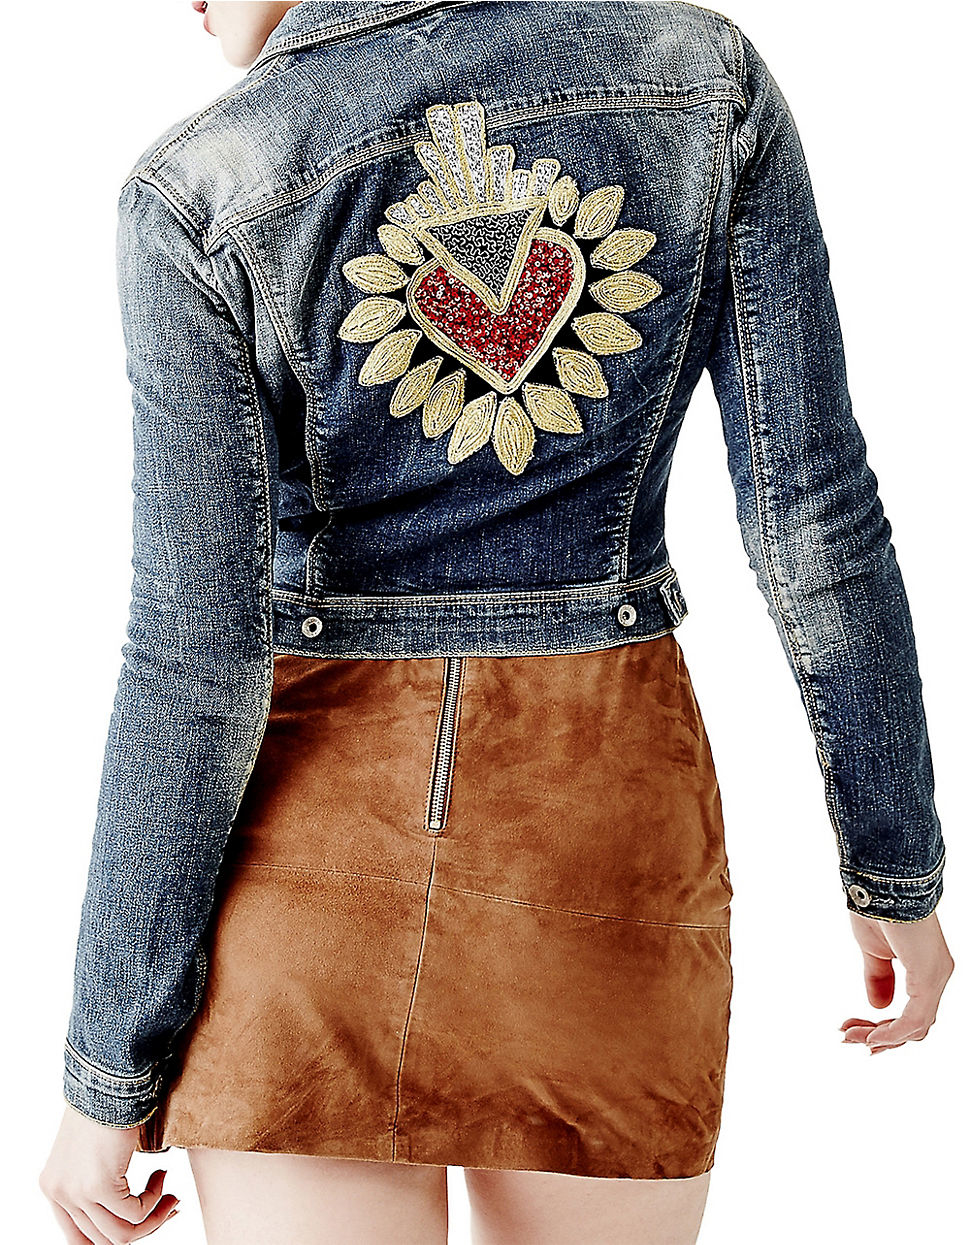 How To Make A Denim Jacket Homo Fashion Society